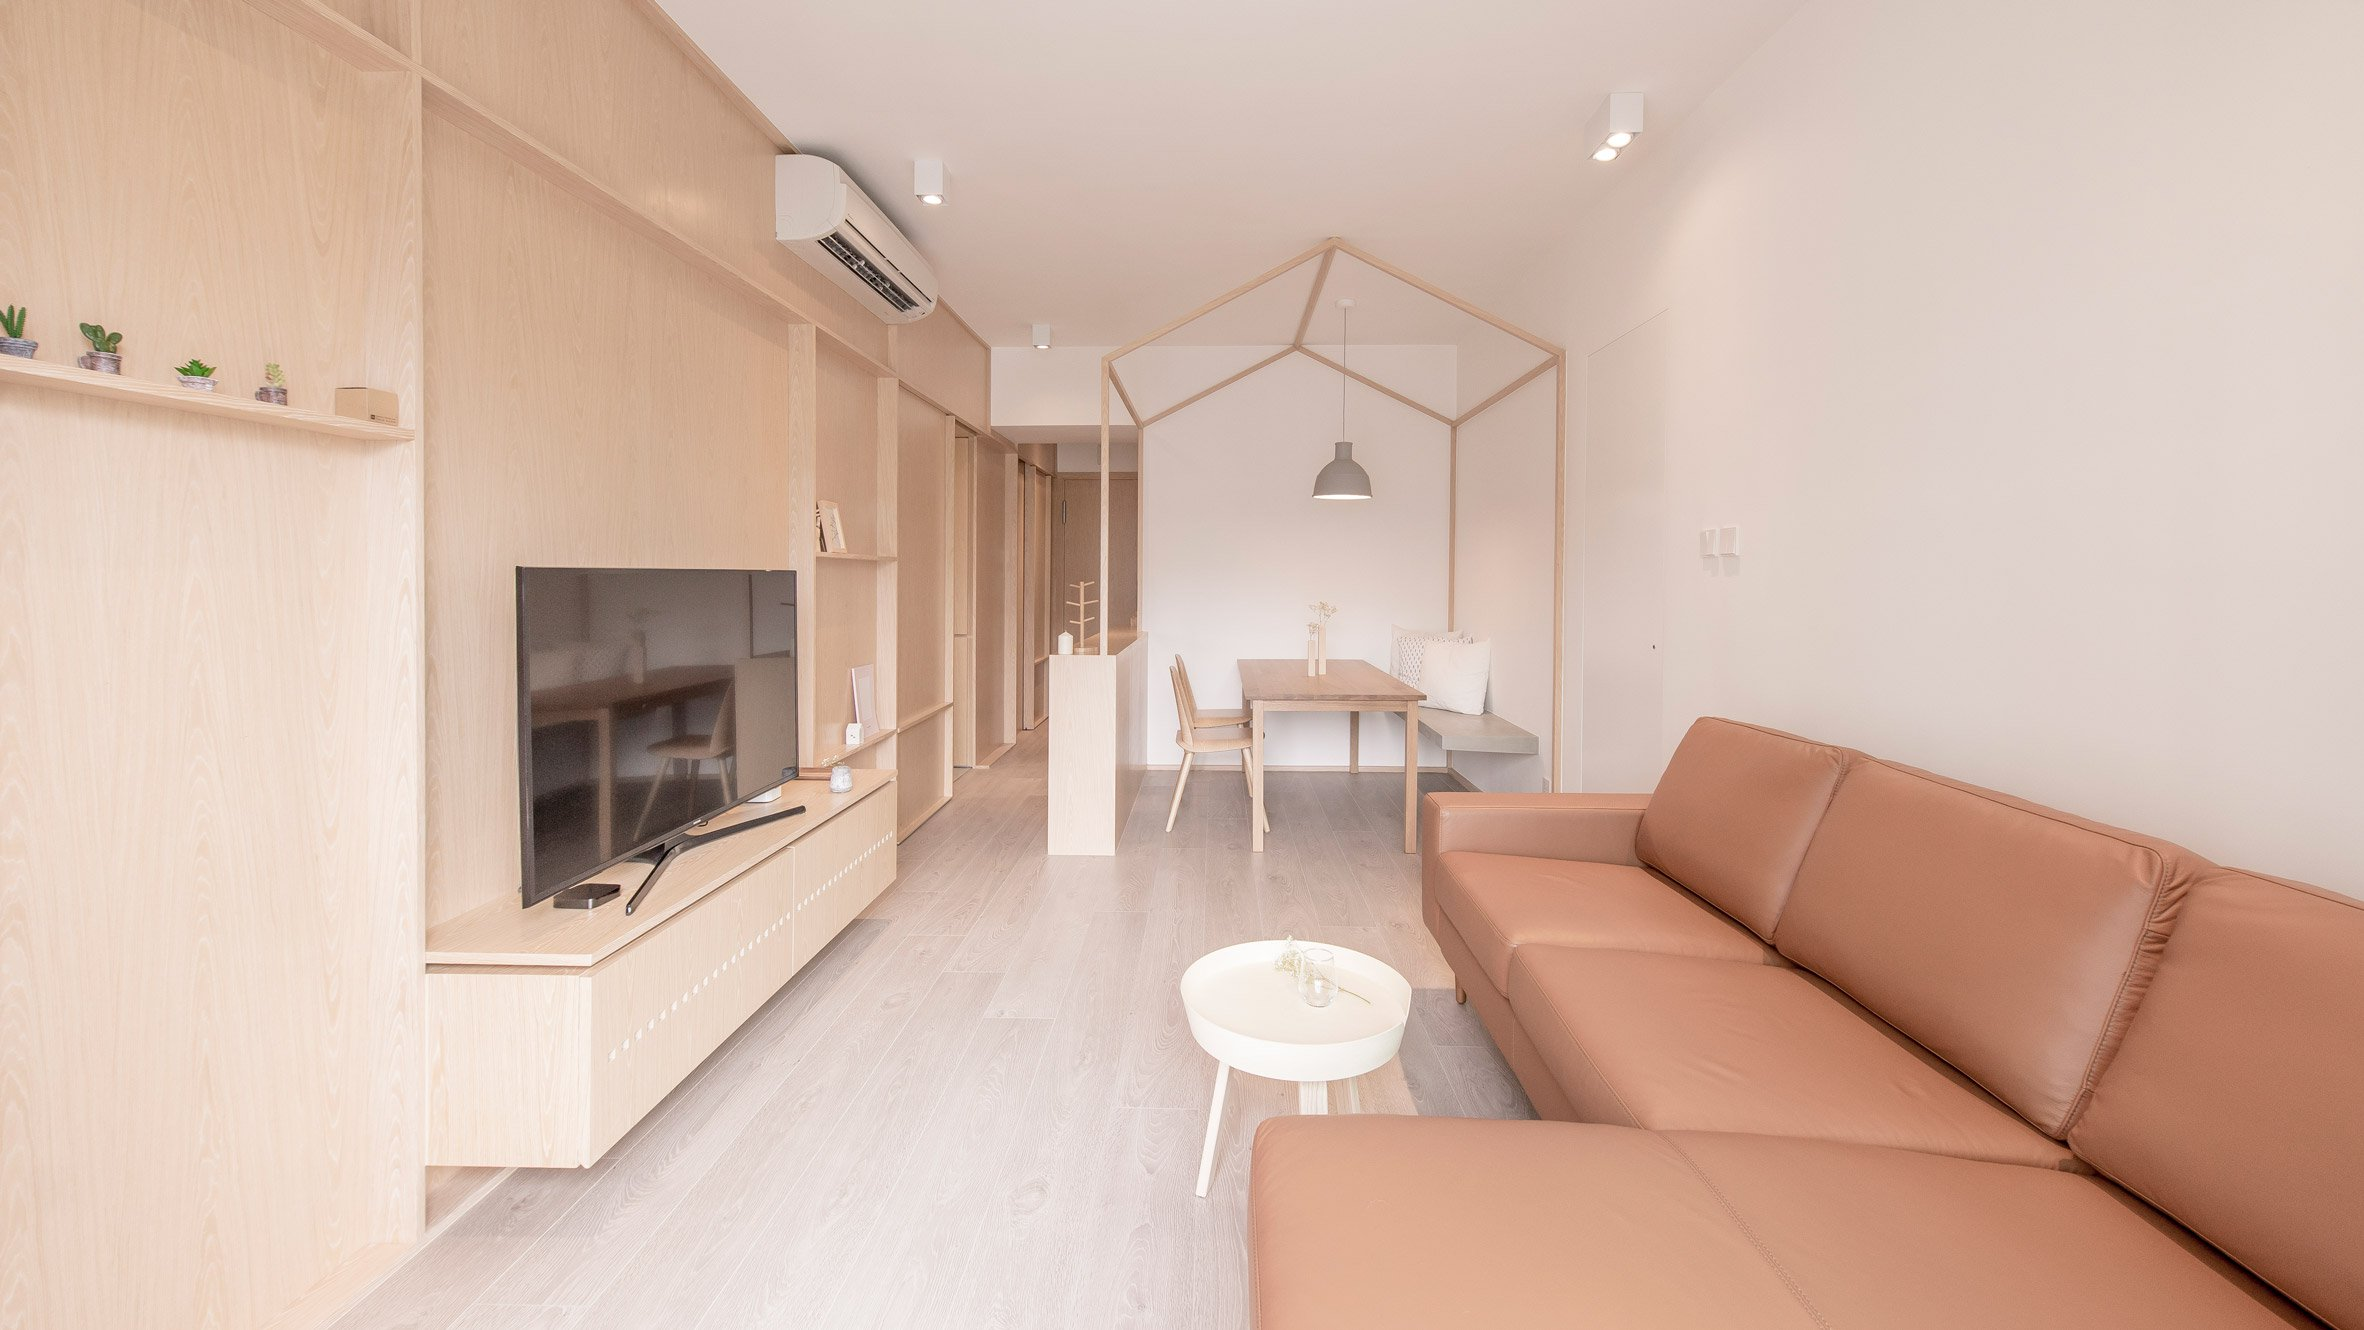 This apartment was created for two young artists and they wanted unfinished aesthetics to finish it the way they want